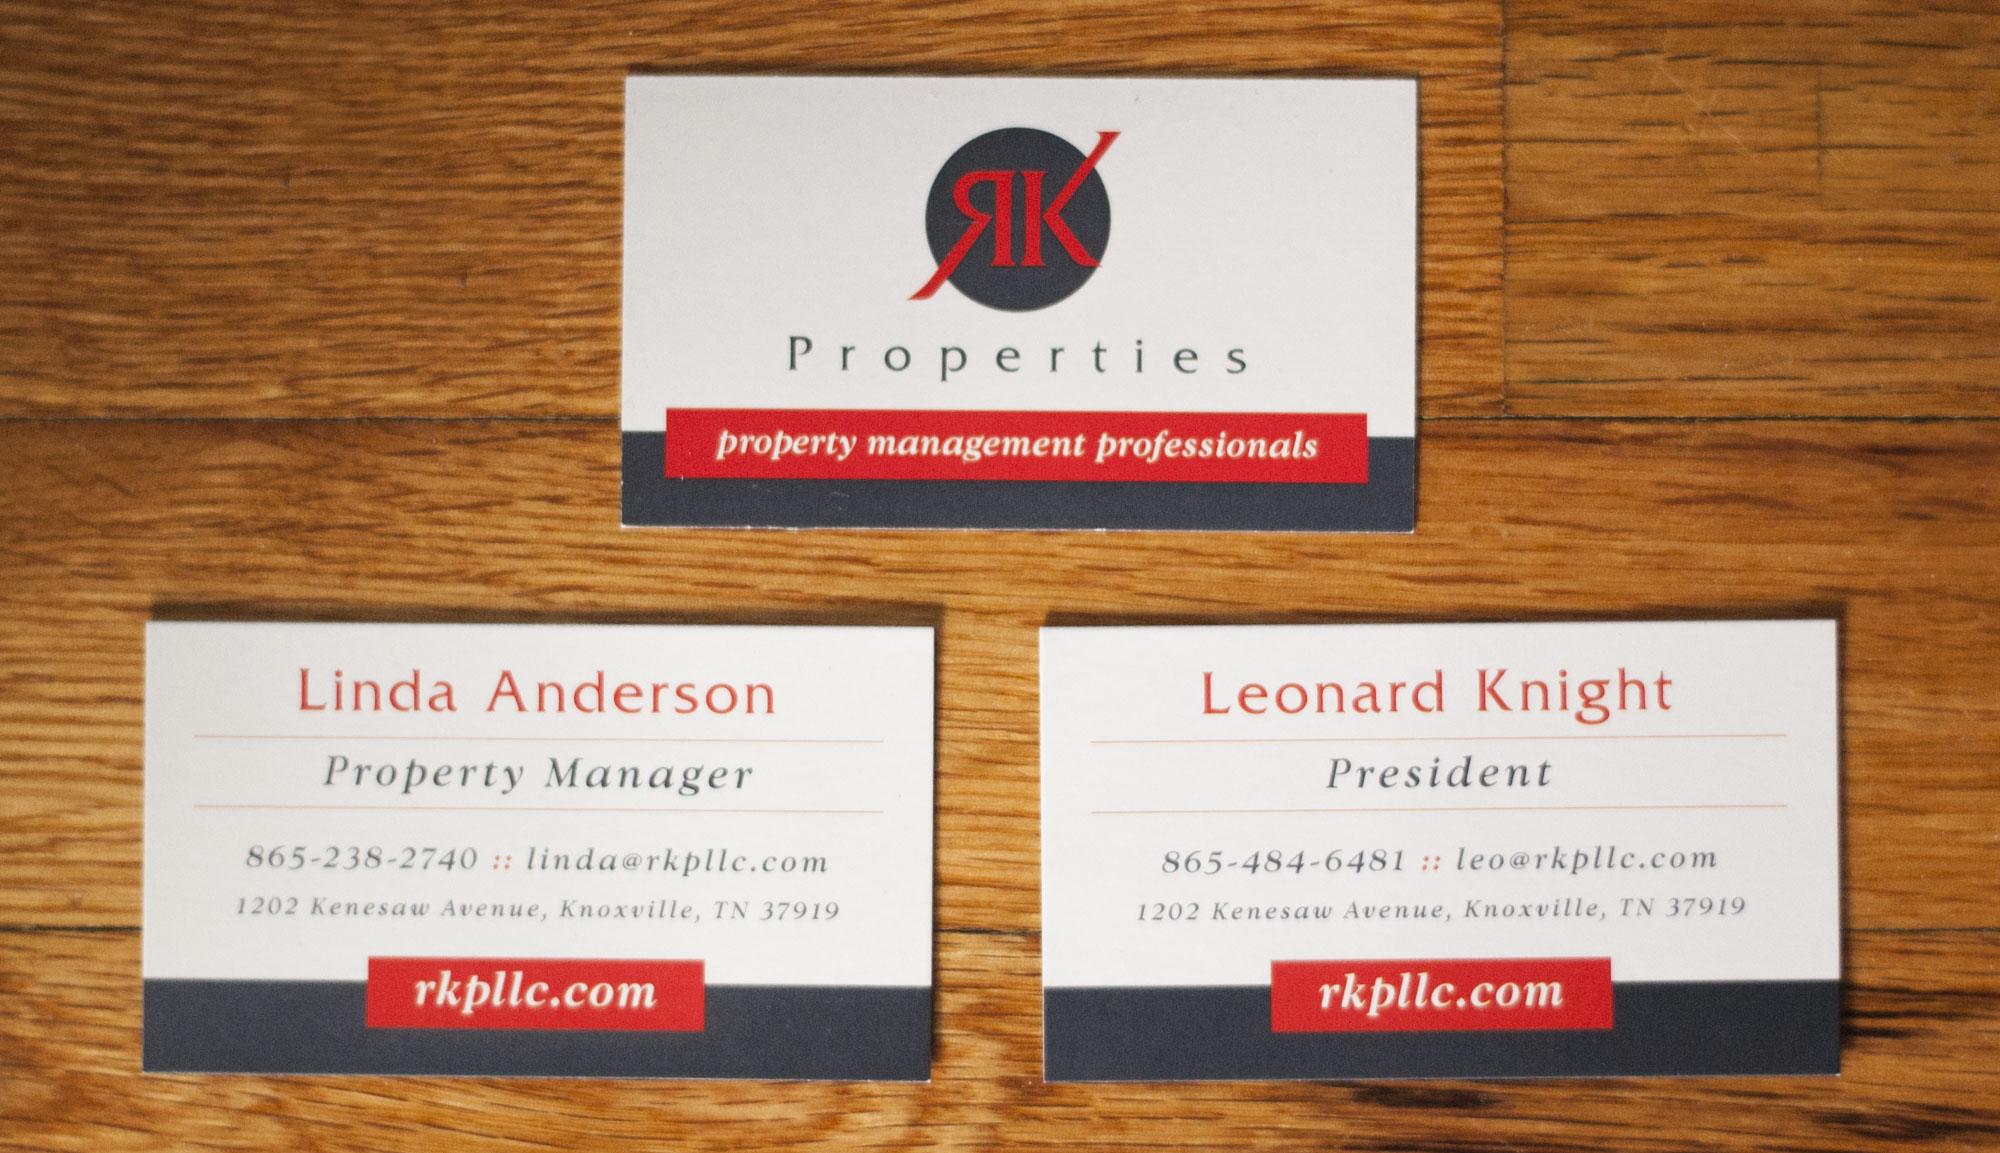 Ethan Beyer: RK Properties - Business Cards